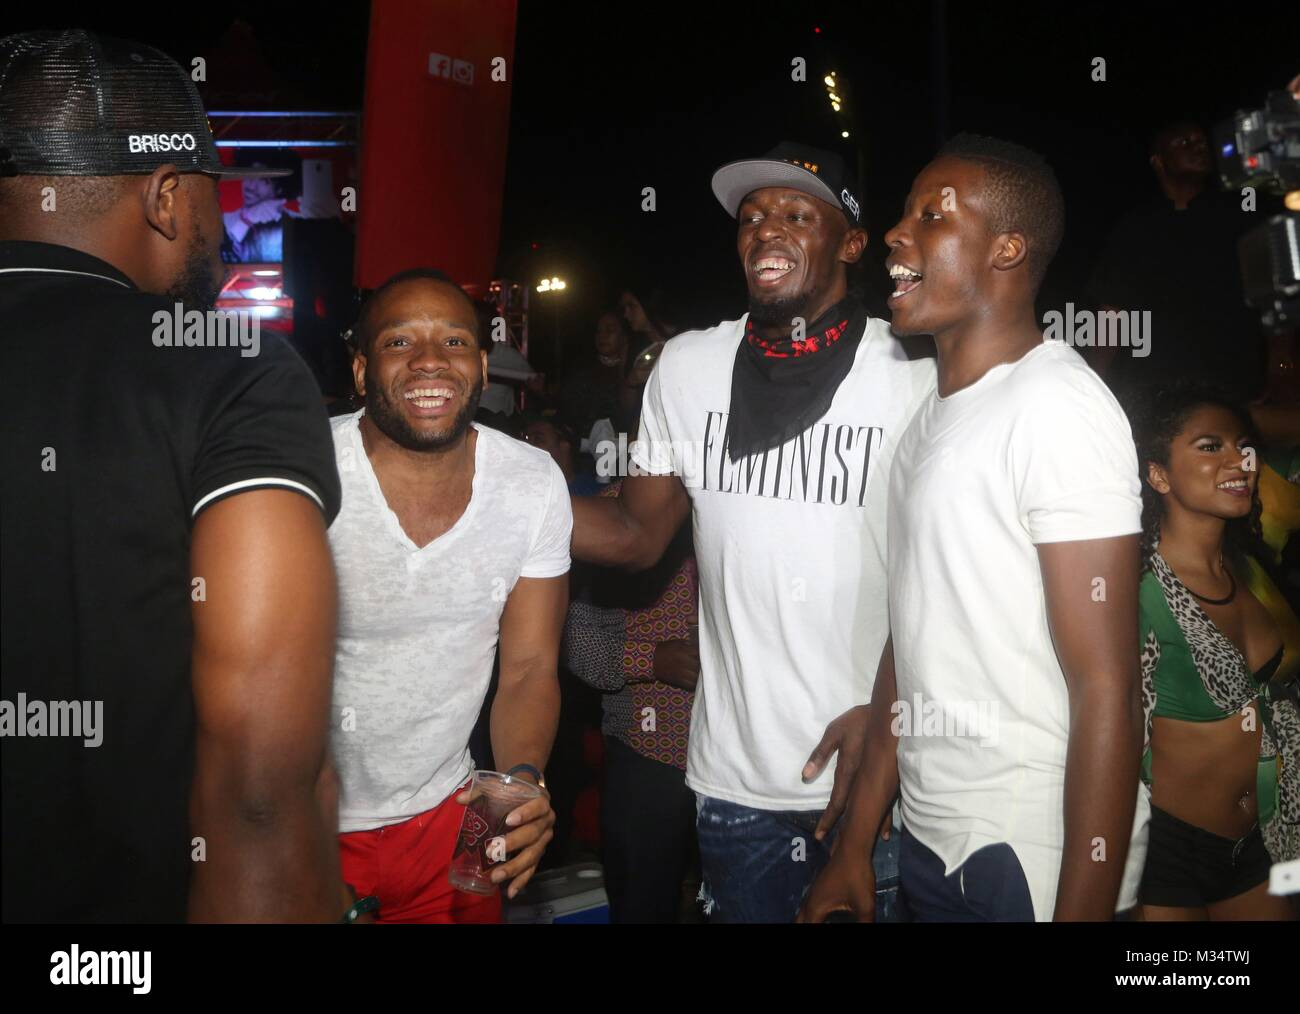 Jamaican ex-athlete Usain Bolt (C) dances at the Tribe's Ignite party held as part of Trinidad and Tobago carnival - Stock Image